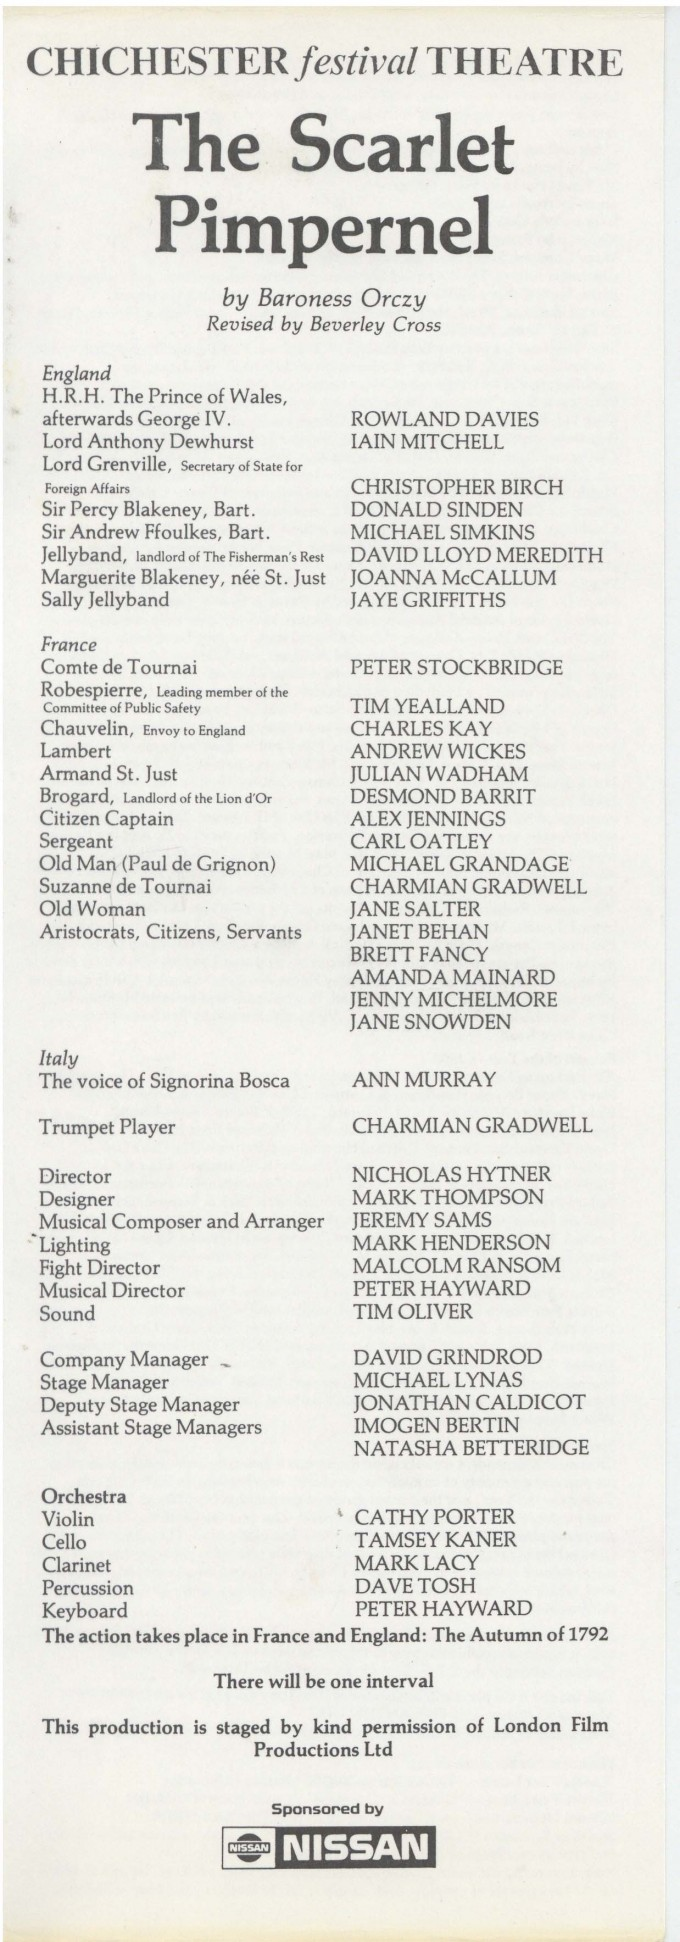 Cast List - The Scarlet Pimpernel - 1985 - 1 of 2